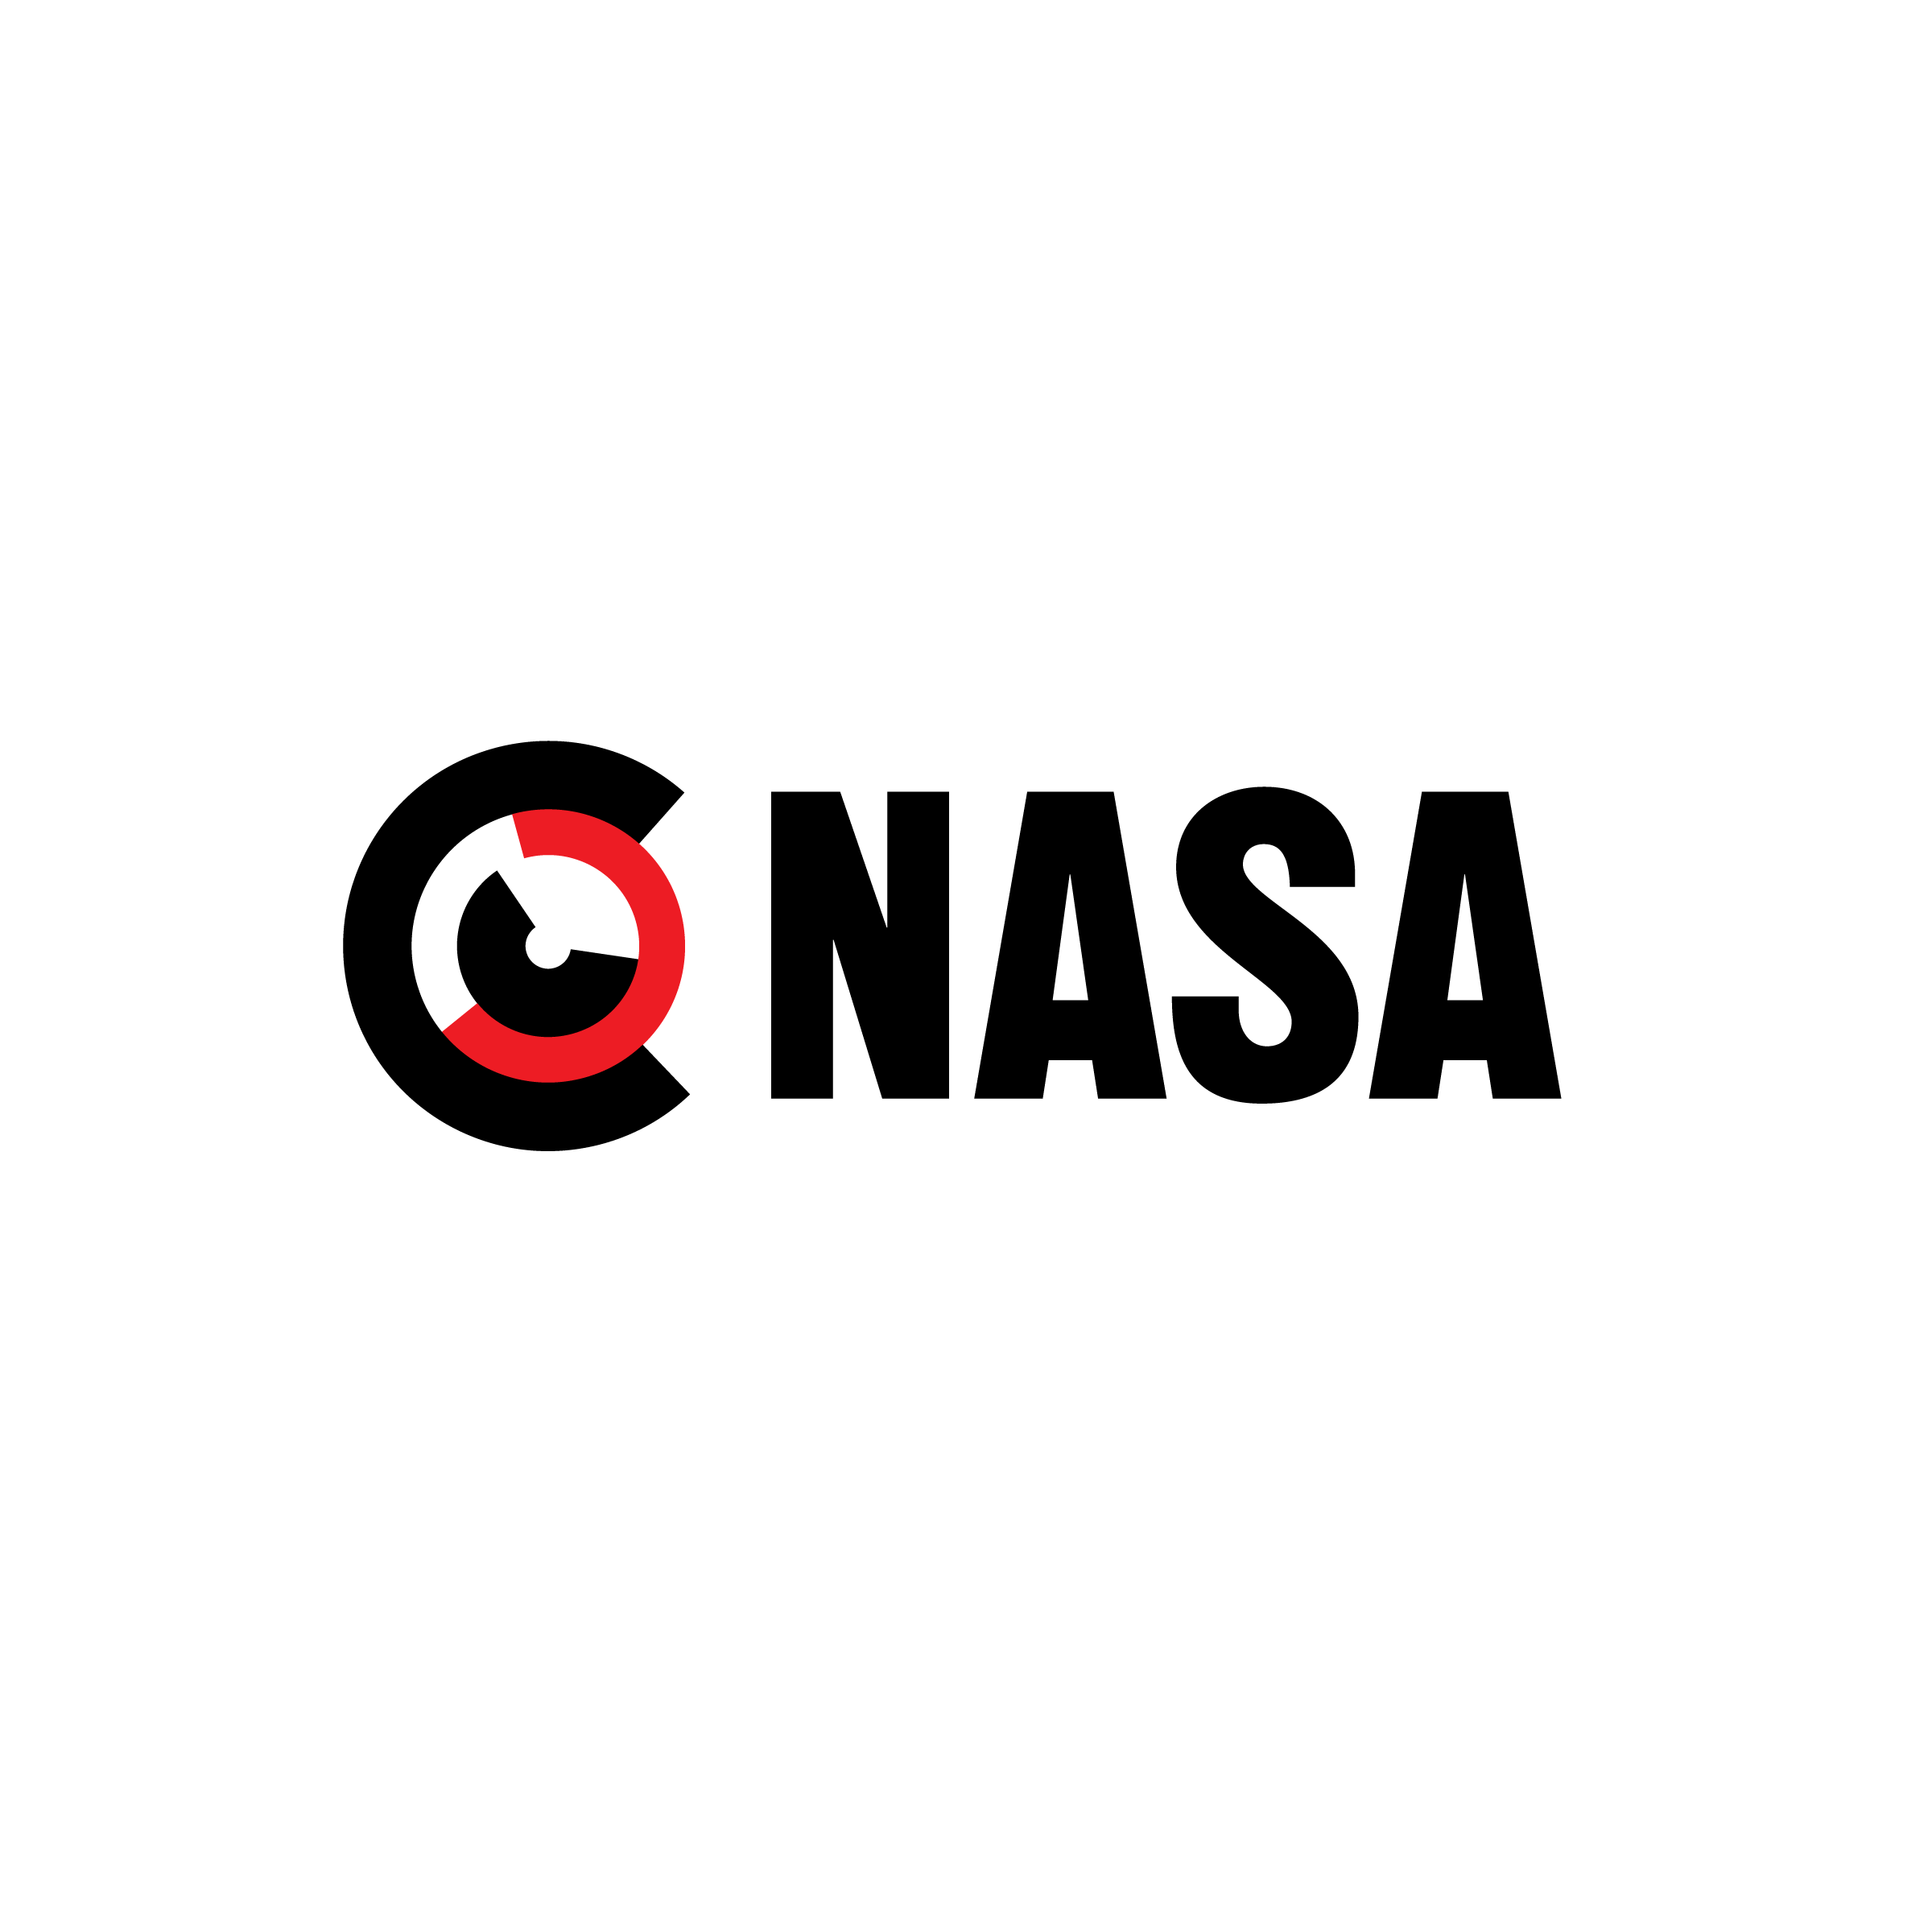 nasa logo redesign - photo #5